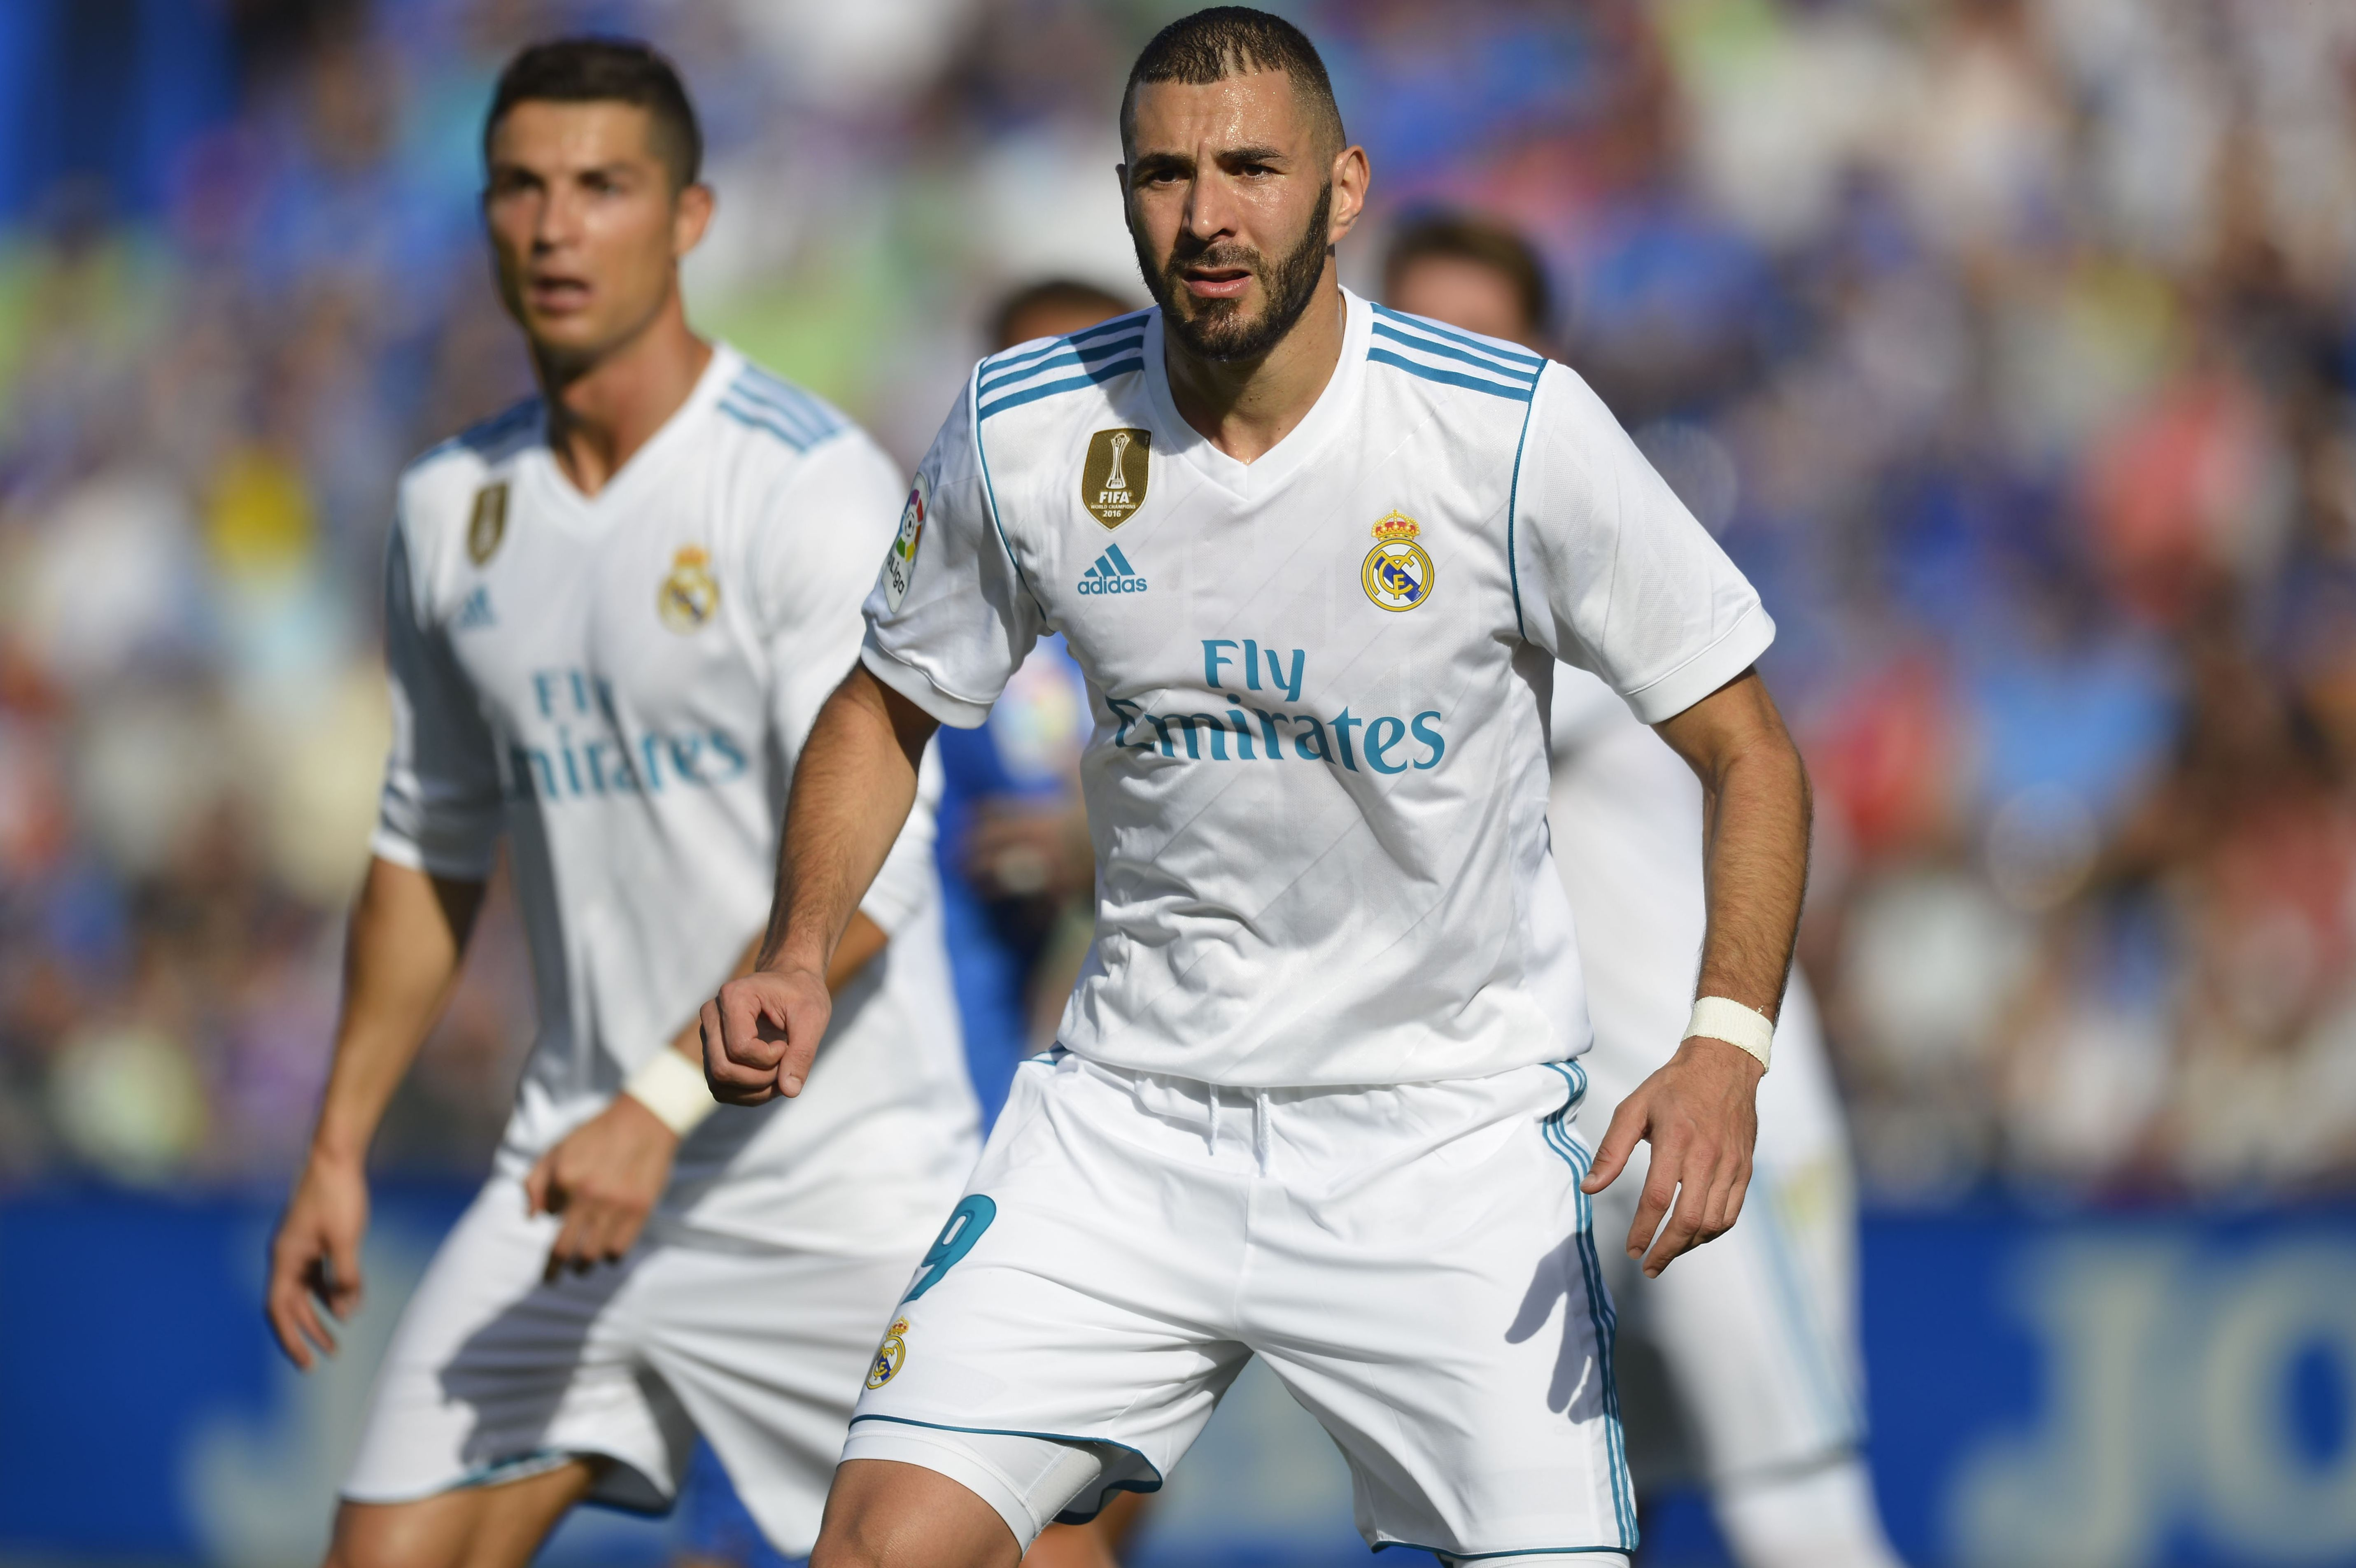 Football - Transferts - Le journal du mercato : Benzema «n'a aucune intention de quitter» le Real Madrid